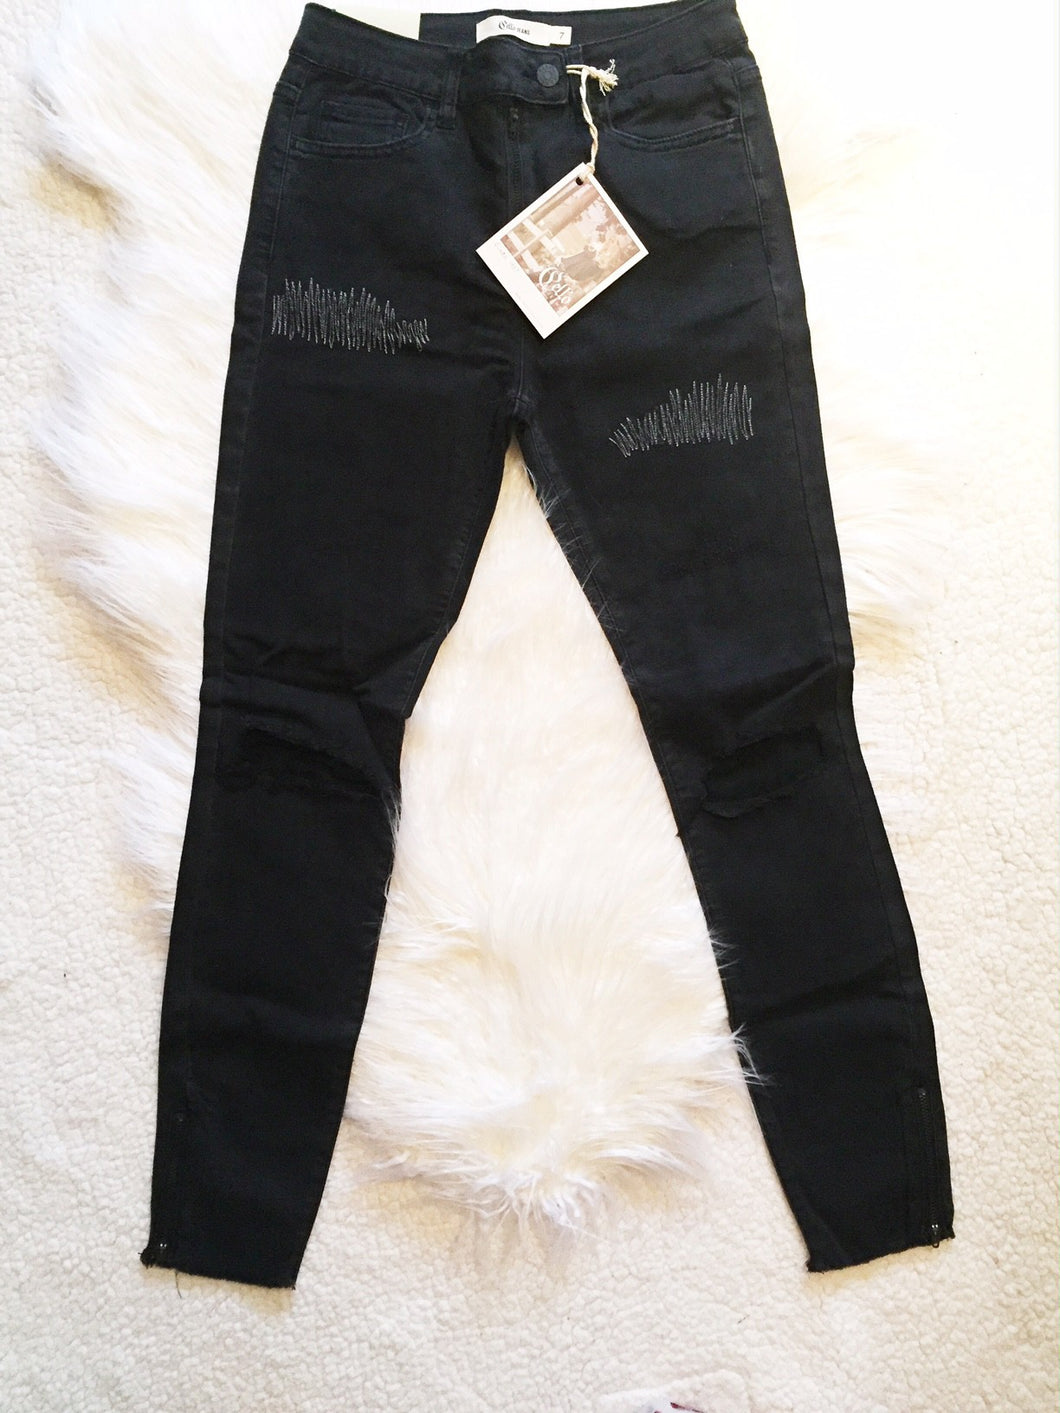 Roxy High Waisted Skinny Jeans